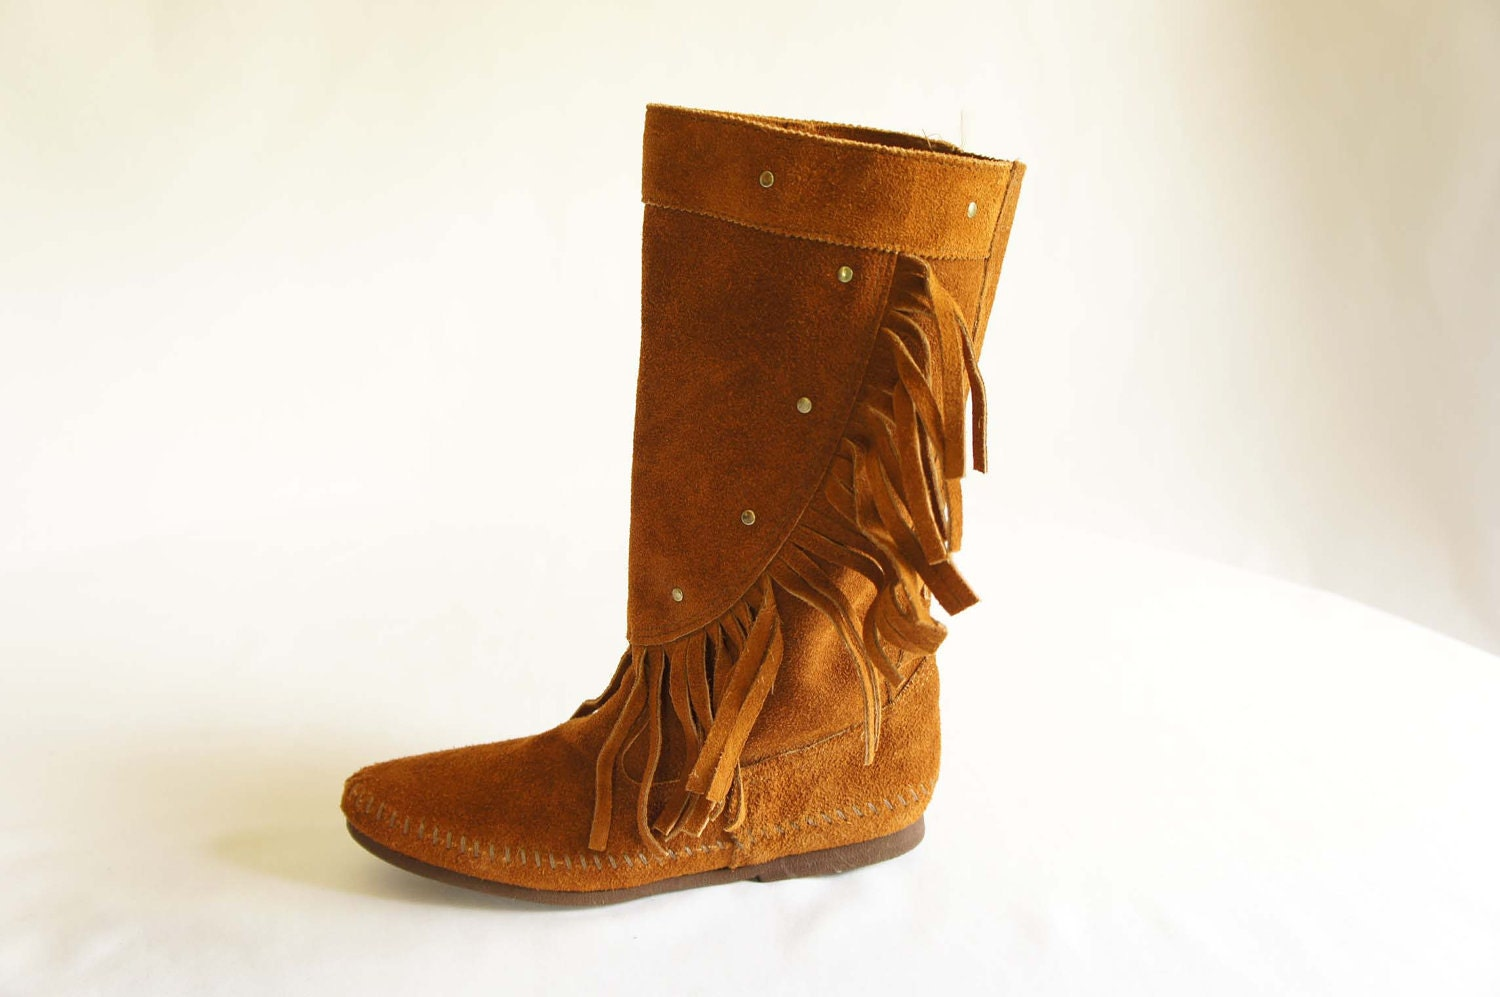 vintage minnetonka moccasin fringe boots in a brown leather